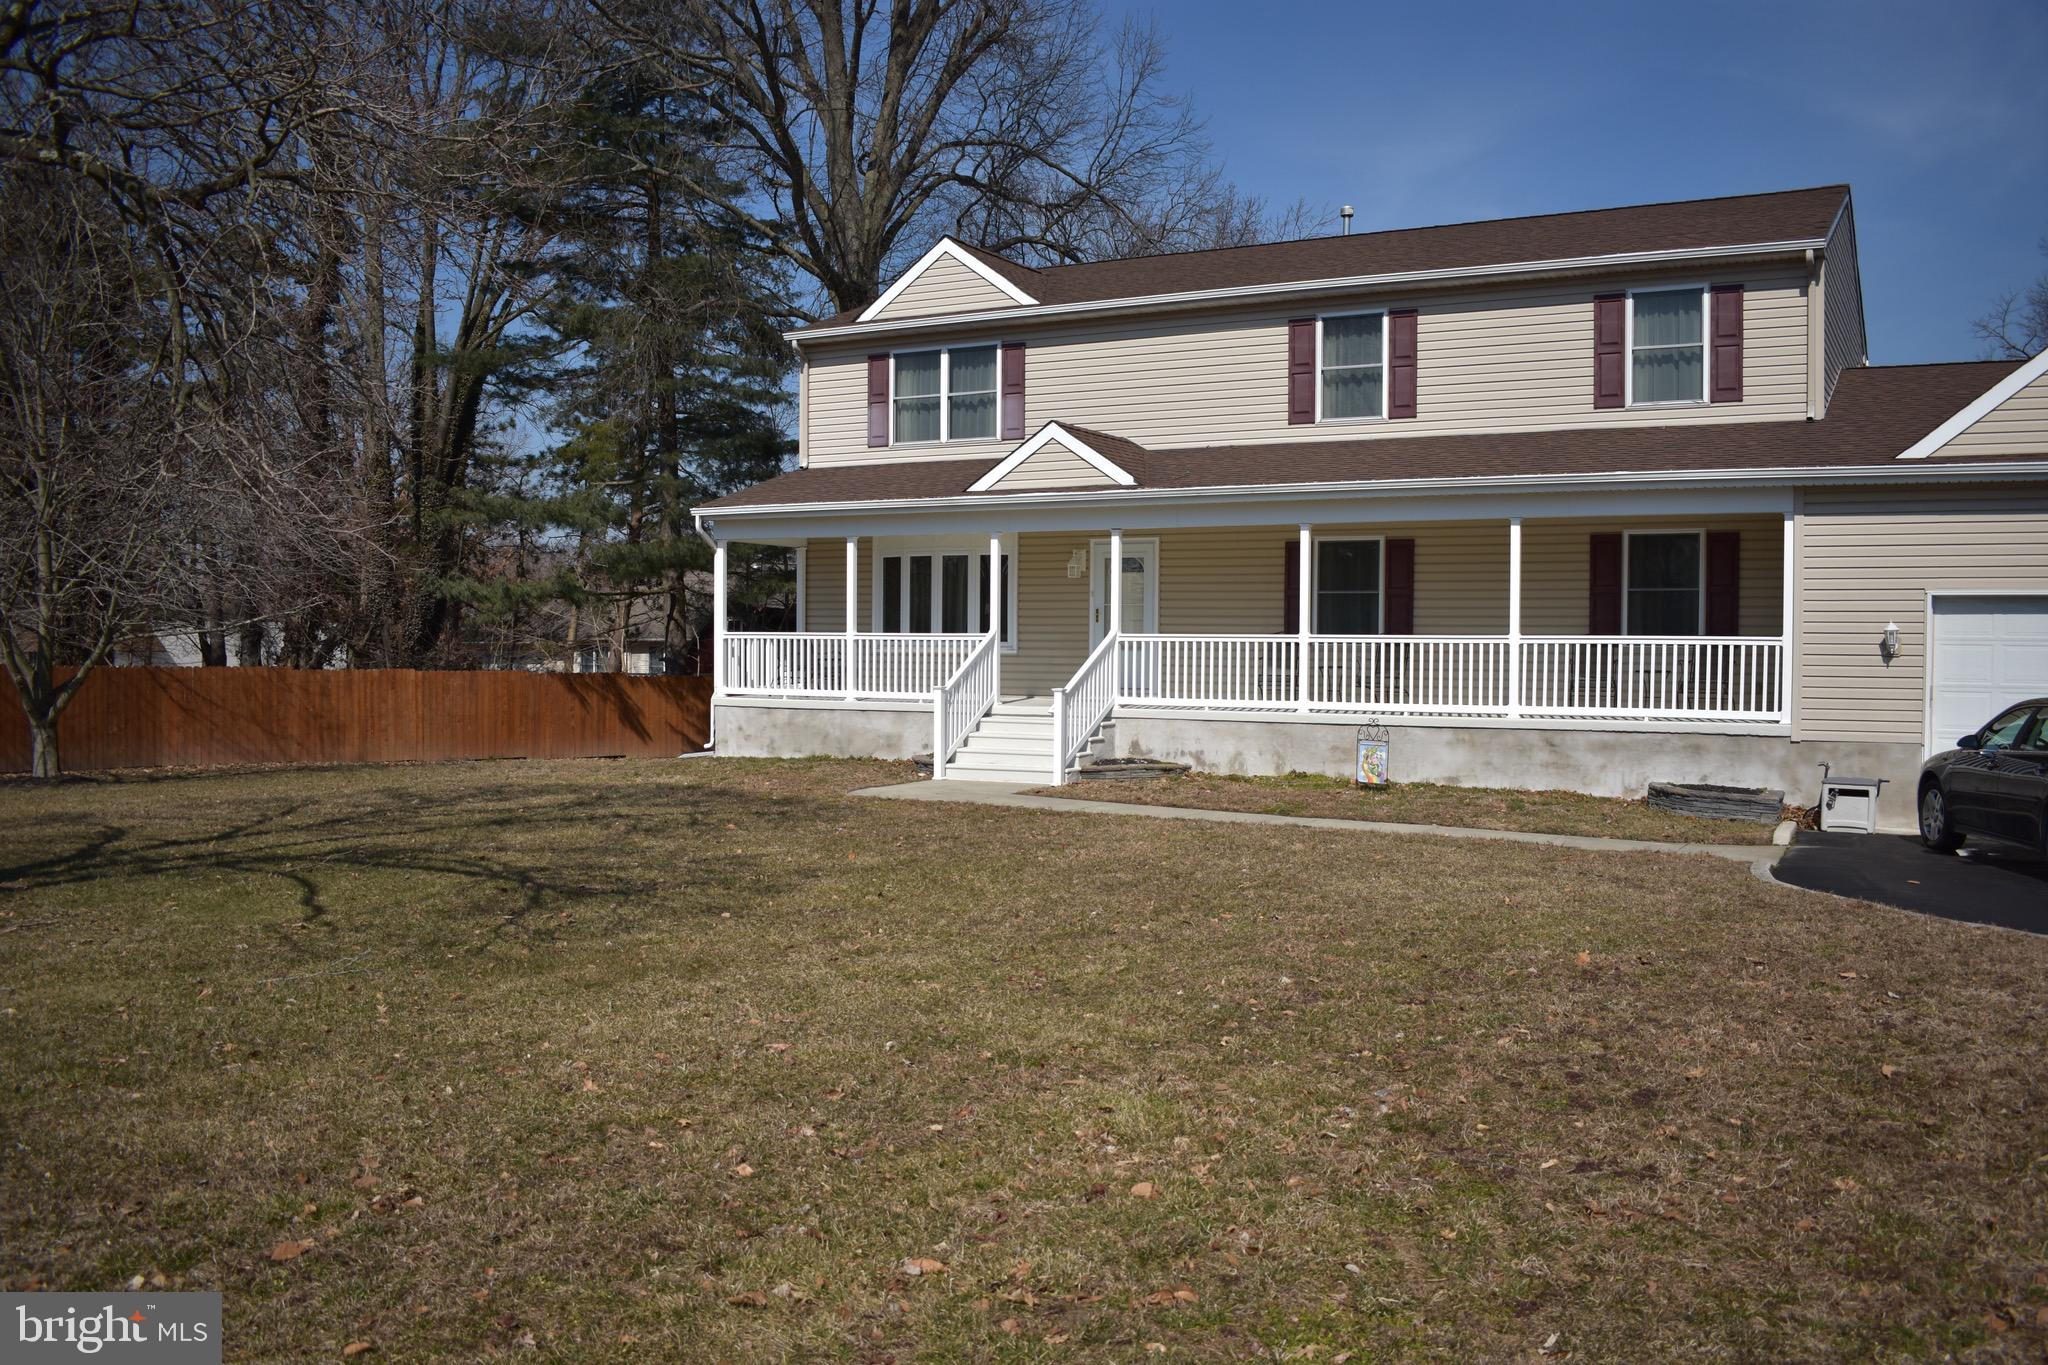 125 PULASKI AVENUE, BLACKWOOD, NJ 08012